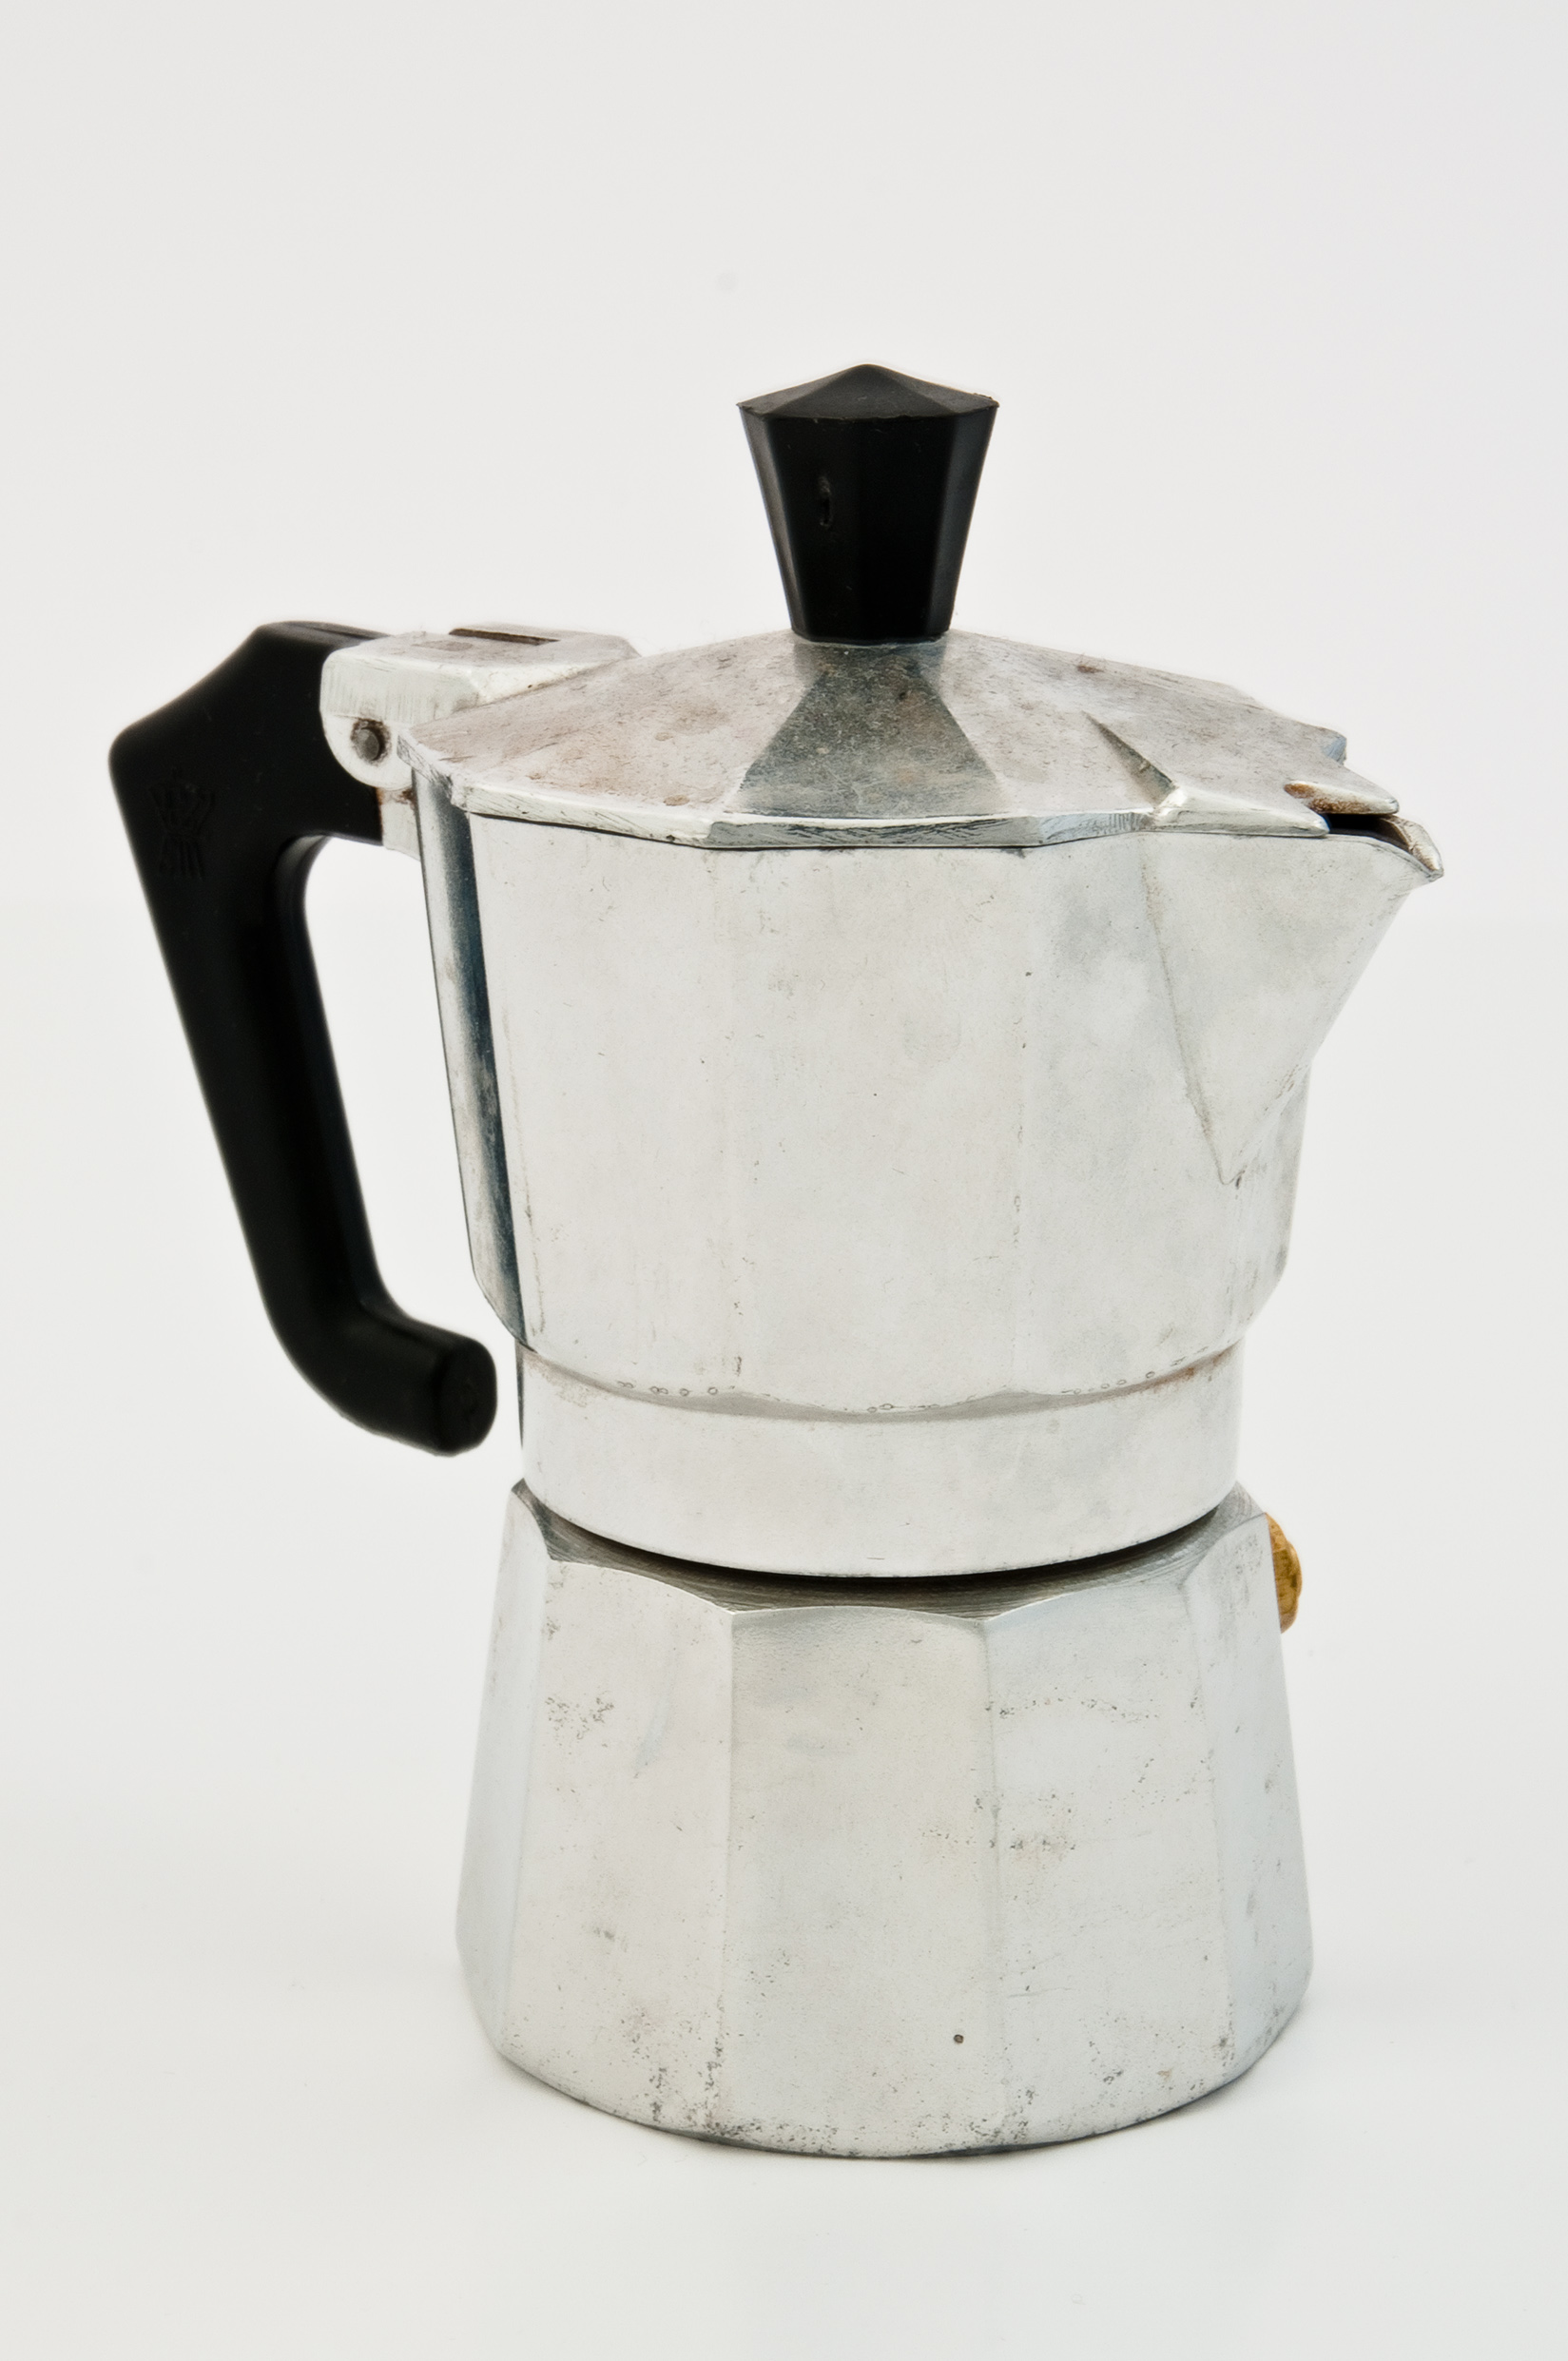 Moka Pot Wikipedia